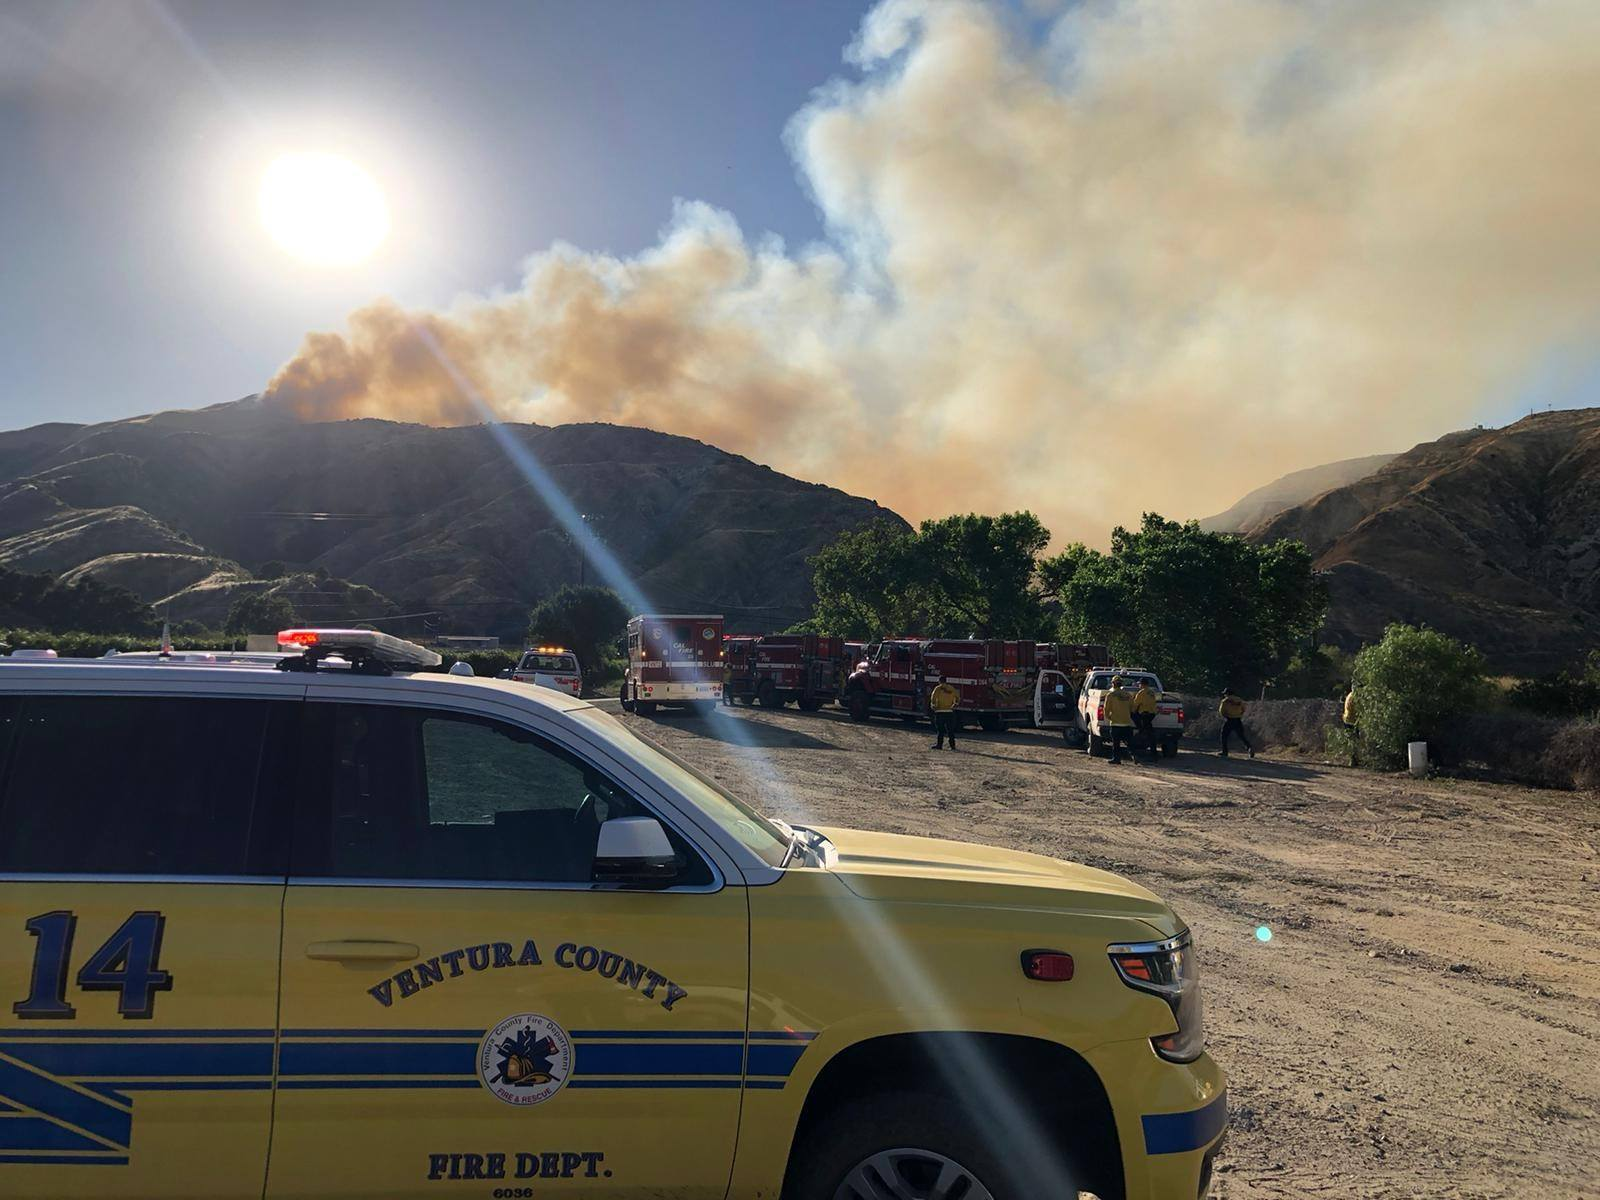 Ventura County Fire Department shared this Lime Fire photo on Facebook on June 10, 2020.